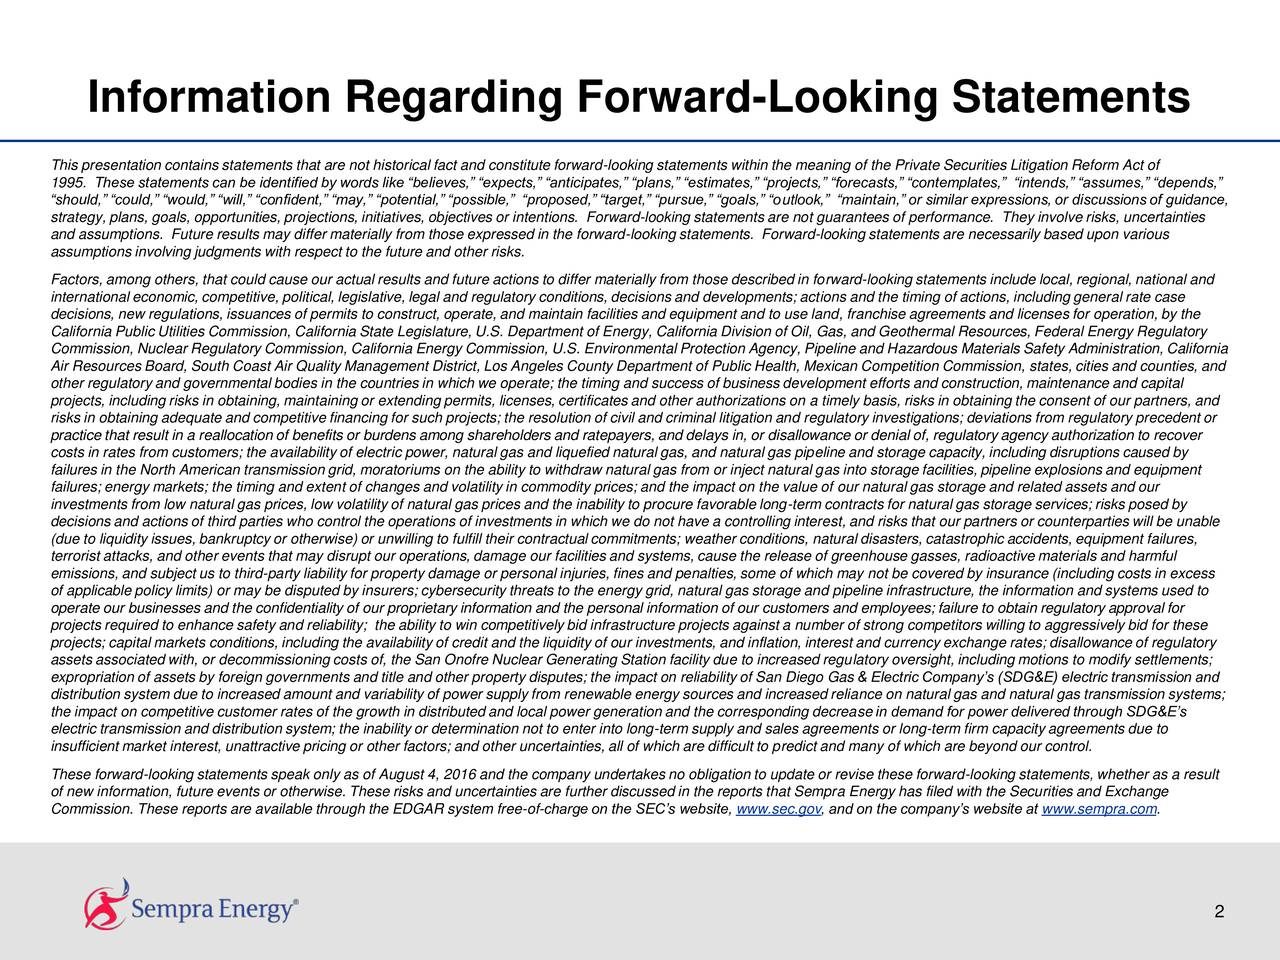 This presentation contains statements that are not historical fact and constitute forward-looking statements within the meaning of the Private Securities Litigation Reform Act of 1995. These statements can be identified by words like believes, expects, anticipates, plans, estimates, projects, forecasts, contemplates, intends, assumes, depends, should, could, would, will, confident, may, potential, possible, proposed, target, pursue, goals, outlook, maintain, or similar expressions, or discussions of guidance, strategy, plans, goals, opportunities, projections, initiatives, objectives or intentions. Forward-looking statements are not guarantees of performance. They involve risks, uncertainties and assumptions. Future results may differ materially from those expressed in the forward-looking statements. Forward-looking statements are necessarily based upon various assumptions involving judgments with respect to the future and other risks. Factors, among others, that could cause our actual results and future actions to differ materially from those described in forward-looking statements include local, regional, national and international economic, competitive, political, legislative, legal and regulatory conditions, decisions and developments; actions and the timing of actions, including general rate case decisions, new regulations, issuances of permits to construct, operate, and maintain facilities and equipment and to use land, franchise agreements and licenses for operation, by the California Public Utilities Commission, California State Legislature, U.S. Department of Energy, California Division of Oil, Gas, and Geothermal Resources, Federal Energy Regulatory Commission, Nuclear Regulatory Commission, California Energy Commission, U.S. Environmental Protection Agency, Pipeline and Hazardous Materials Safety Administration, California Air Resources Board, South Coast Air Quality Management District, Los Angeles County Department of Public Health, Mexican Competition 